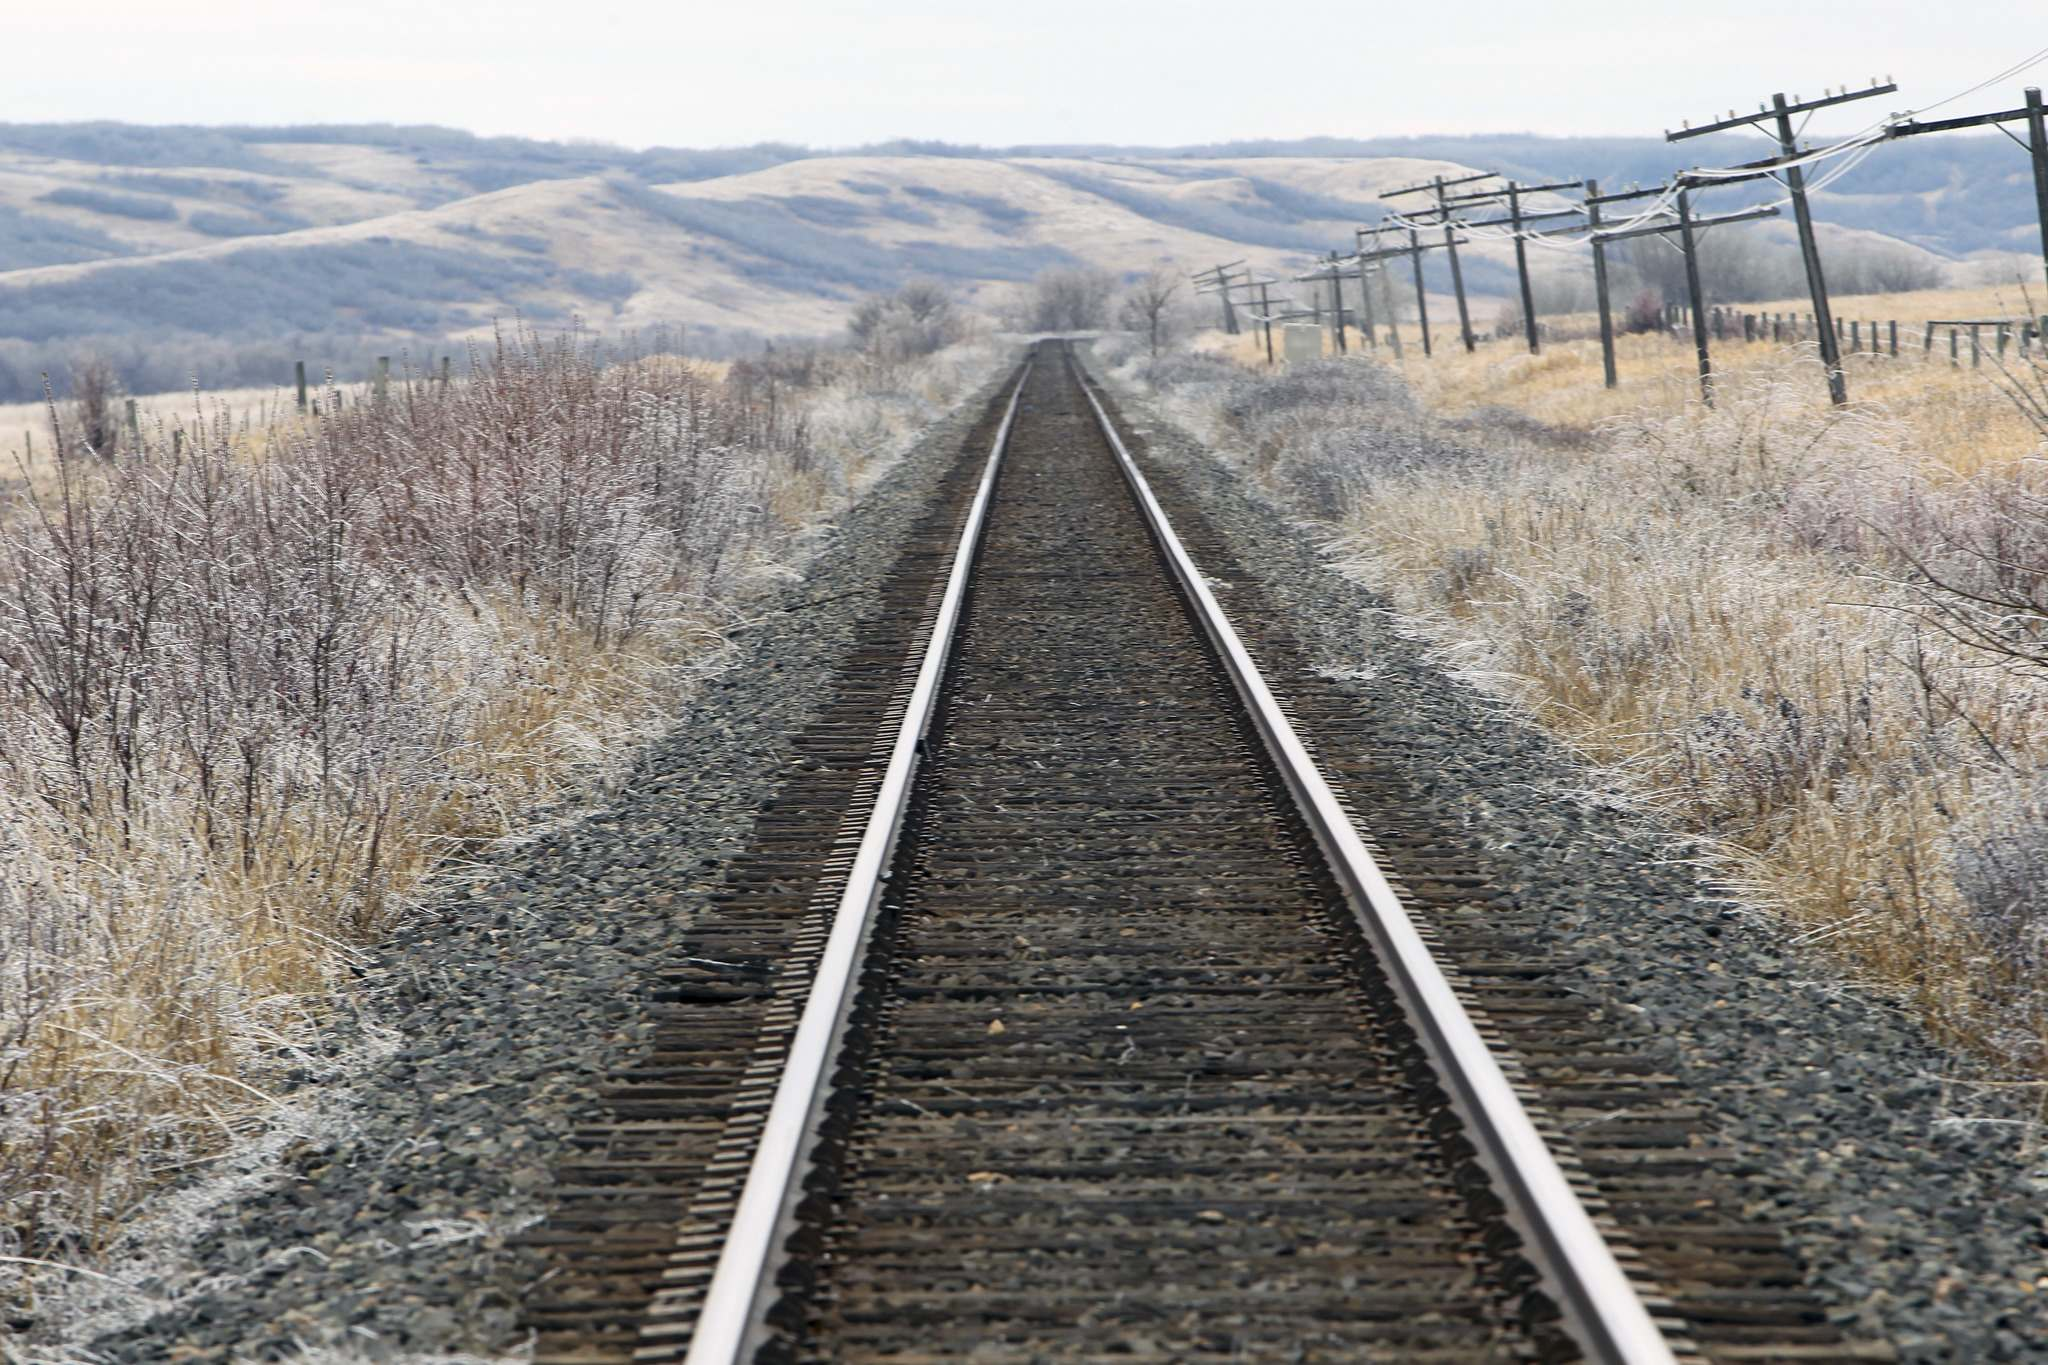 Birdtail Sioux Dakota First Nation Chief Ken Chalmers may be forced to take legal action to suspend traffic on the CN rail line running through his community if the federal government continues to stall on core-treaty talks. (File)</p></p>